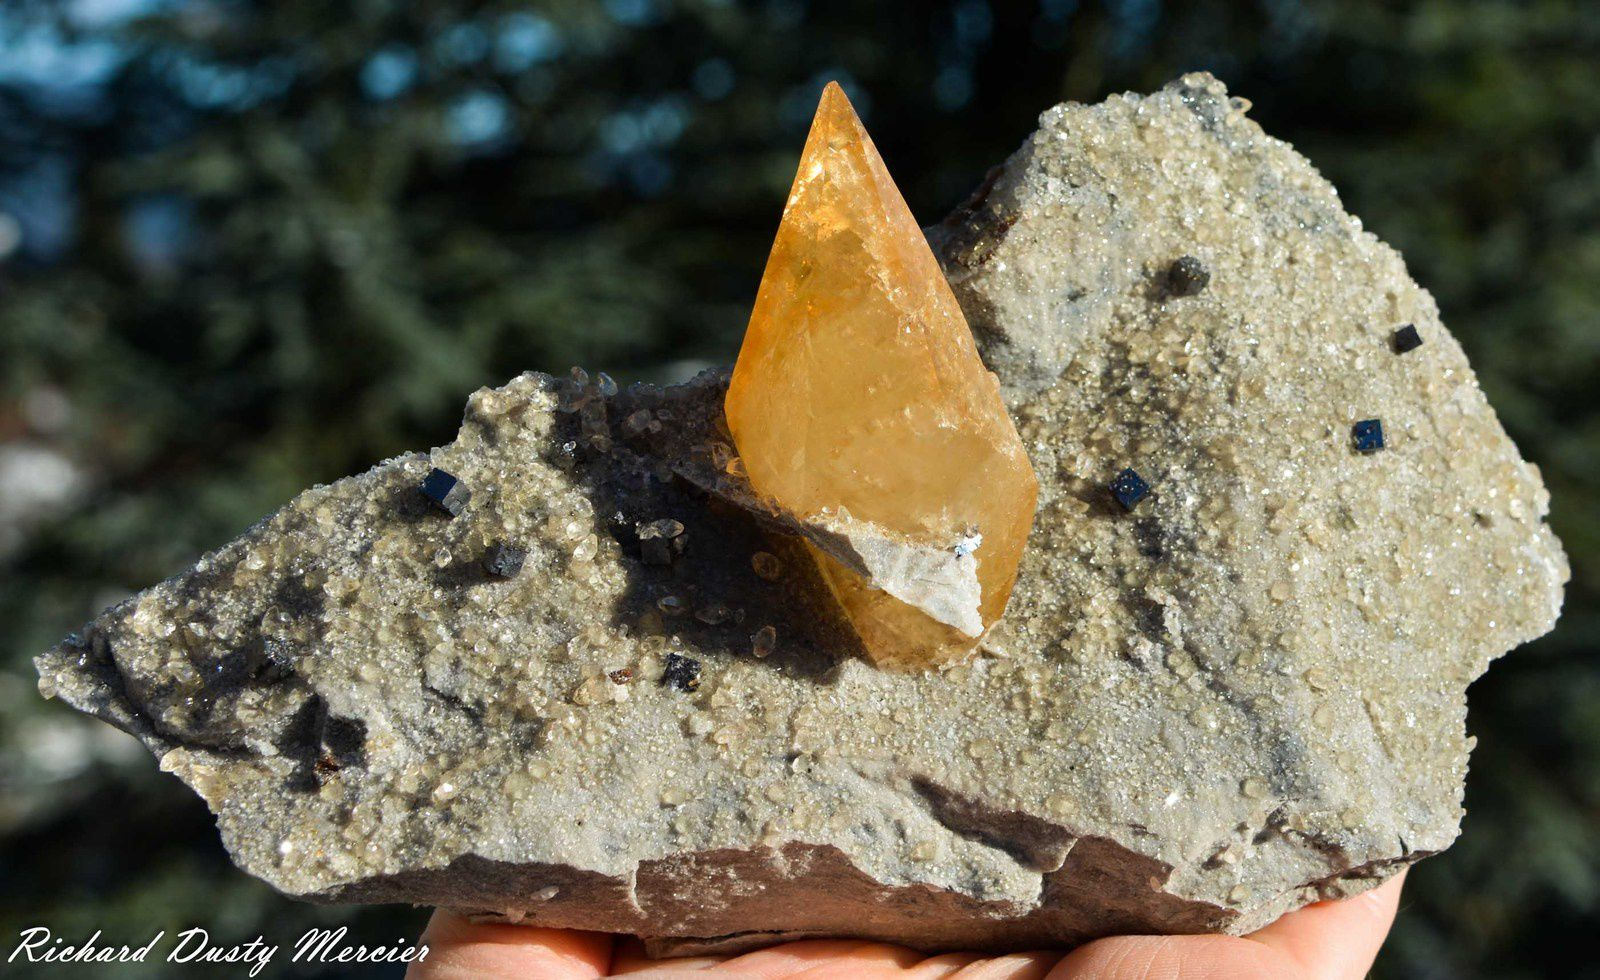 Calcite with Sphalerite from Elmwood Mine, USA